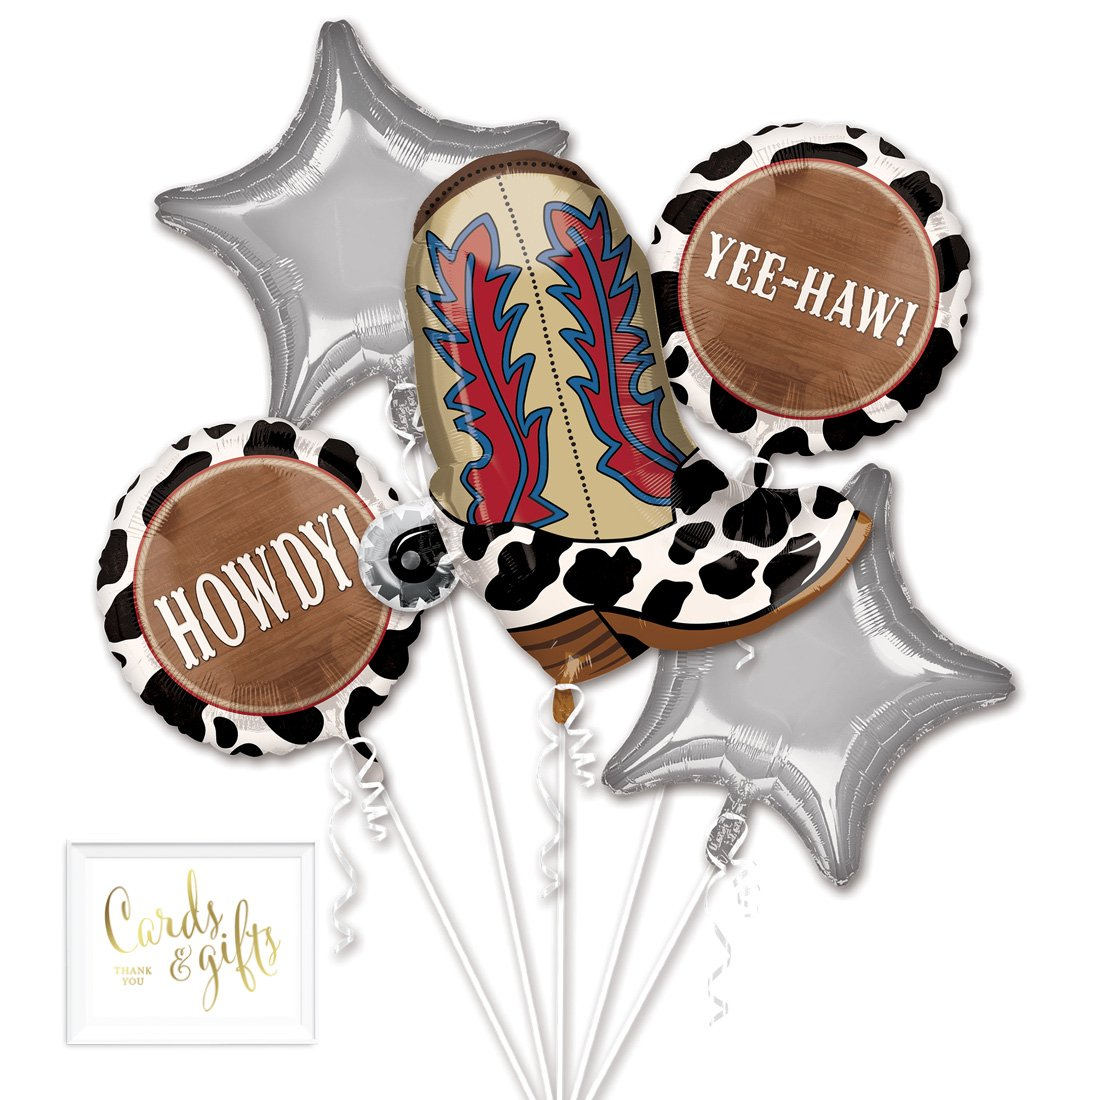 Andaz Press Balloon Bouquet Party Kit with Gold Cards & Gifts Sign, Yeehaw Foil Mylar Balloon Country Western Cowboy Cowgirl Decorations, 1-Set